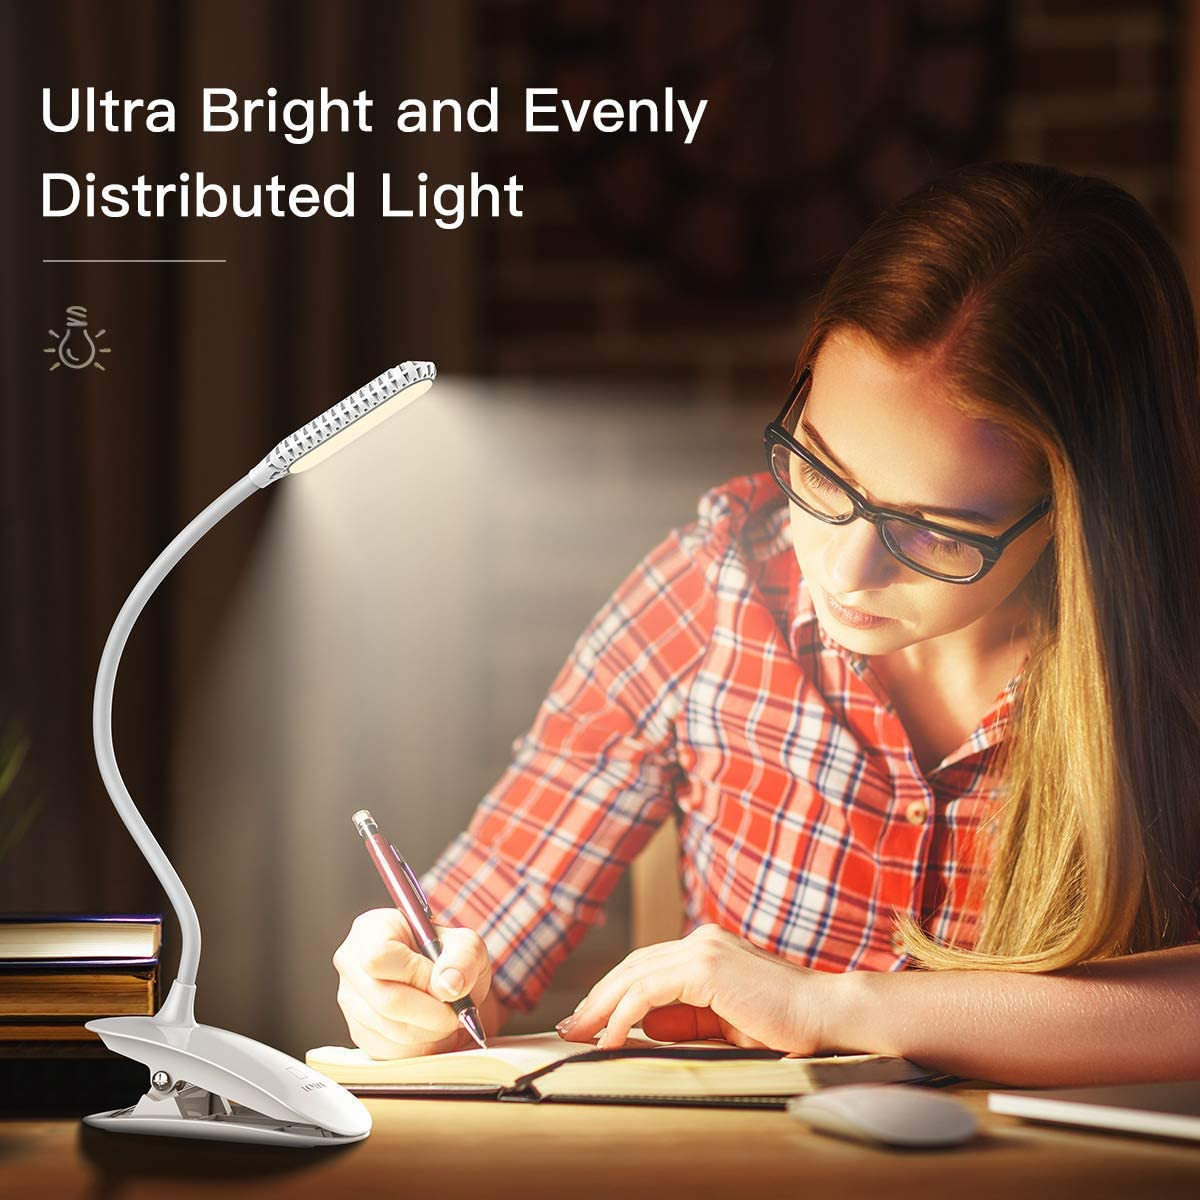 LOYLOV Ultra-Bright Warm LED Book Light 3 Brightness Eye Care Clip on Reading Light Touch Switch Bedside Reading Lamp USB Rechargeable Headboard Book Lamp for Reading in Bed at Night for Kids